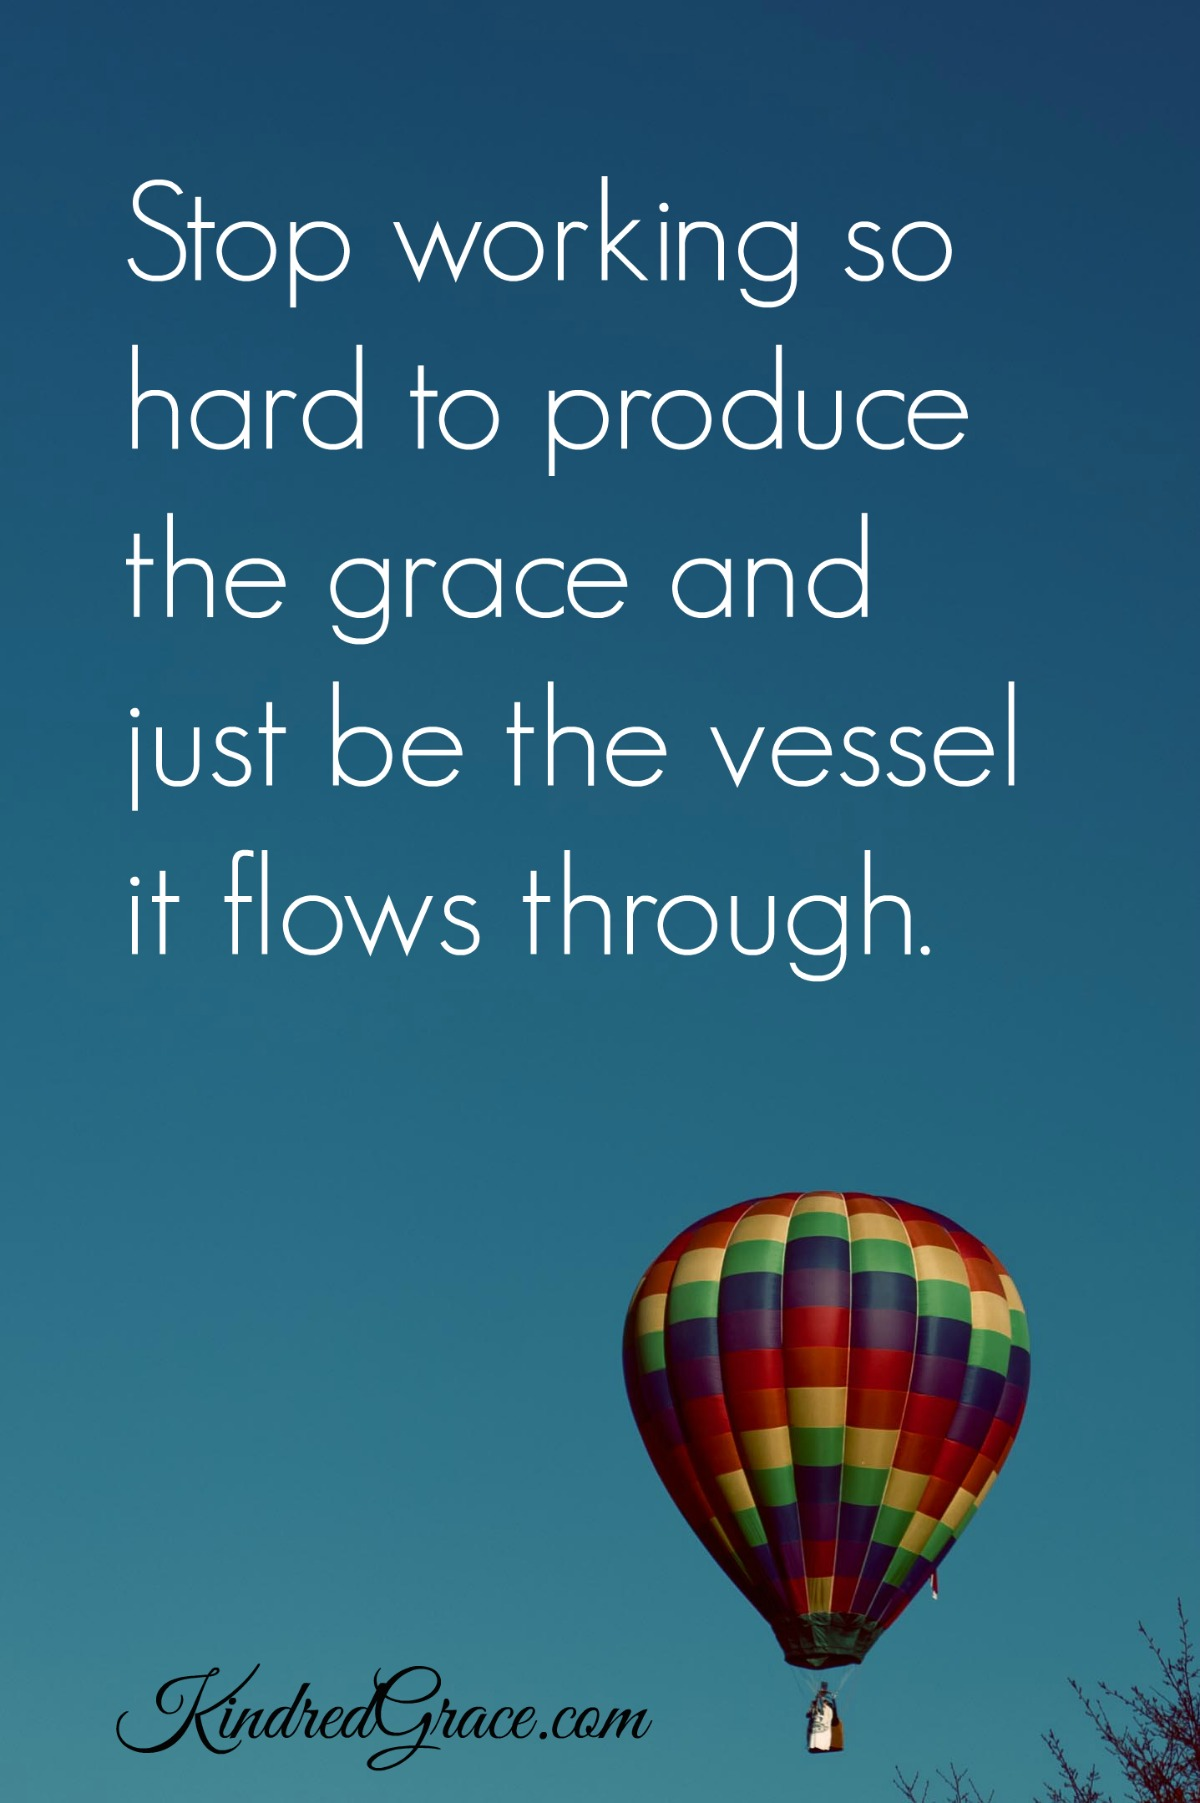 Stop working so hard to produce the grace and just be the vessel it flows through.